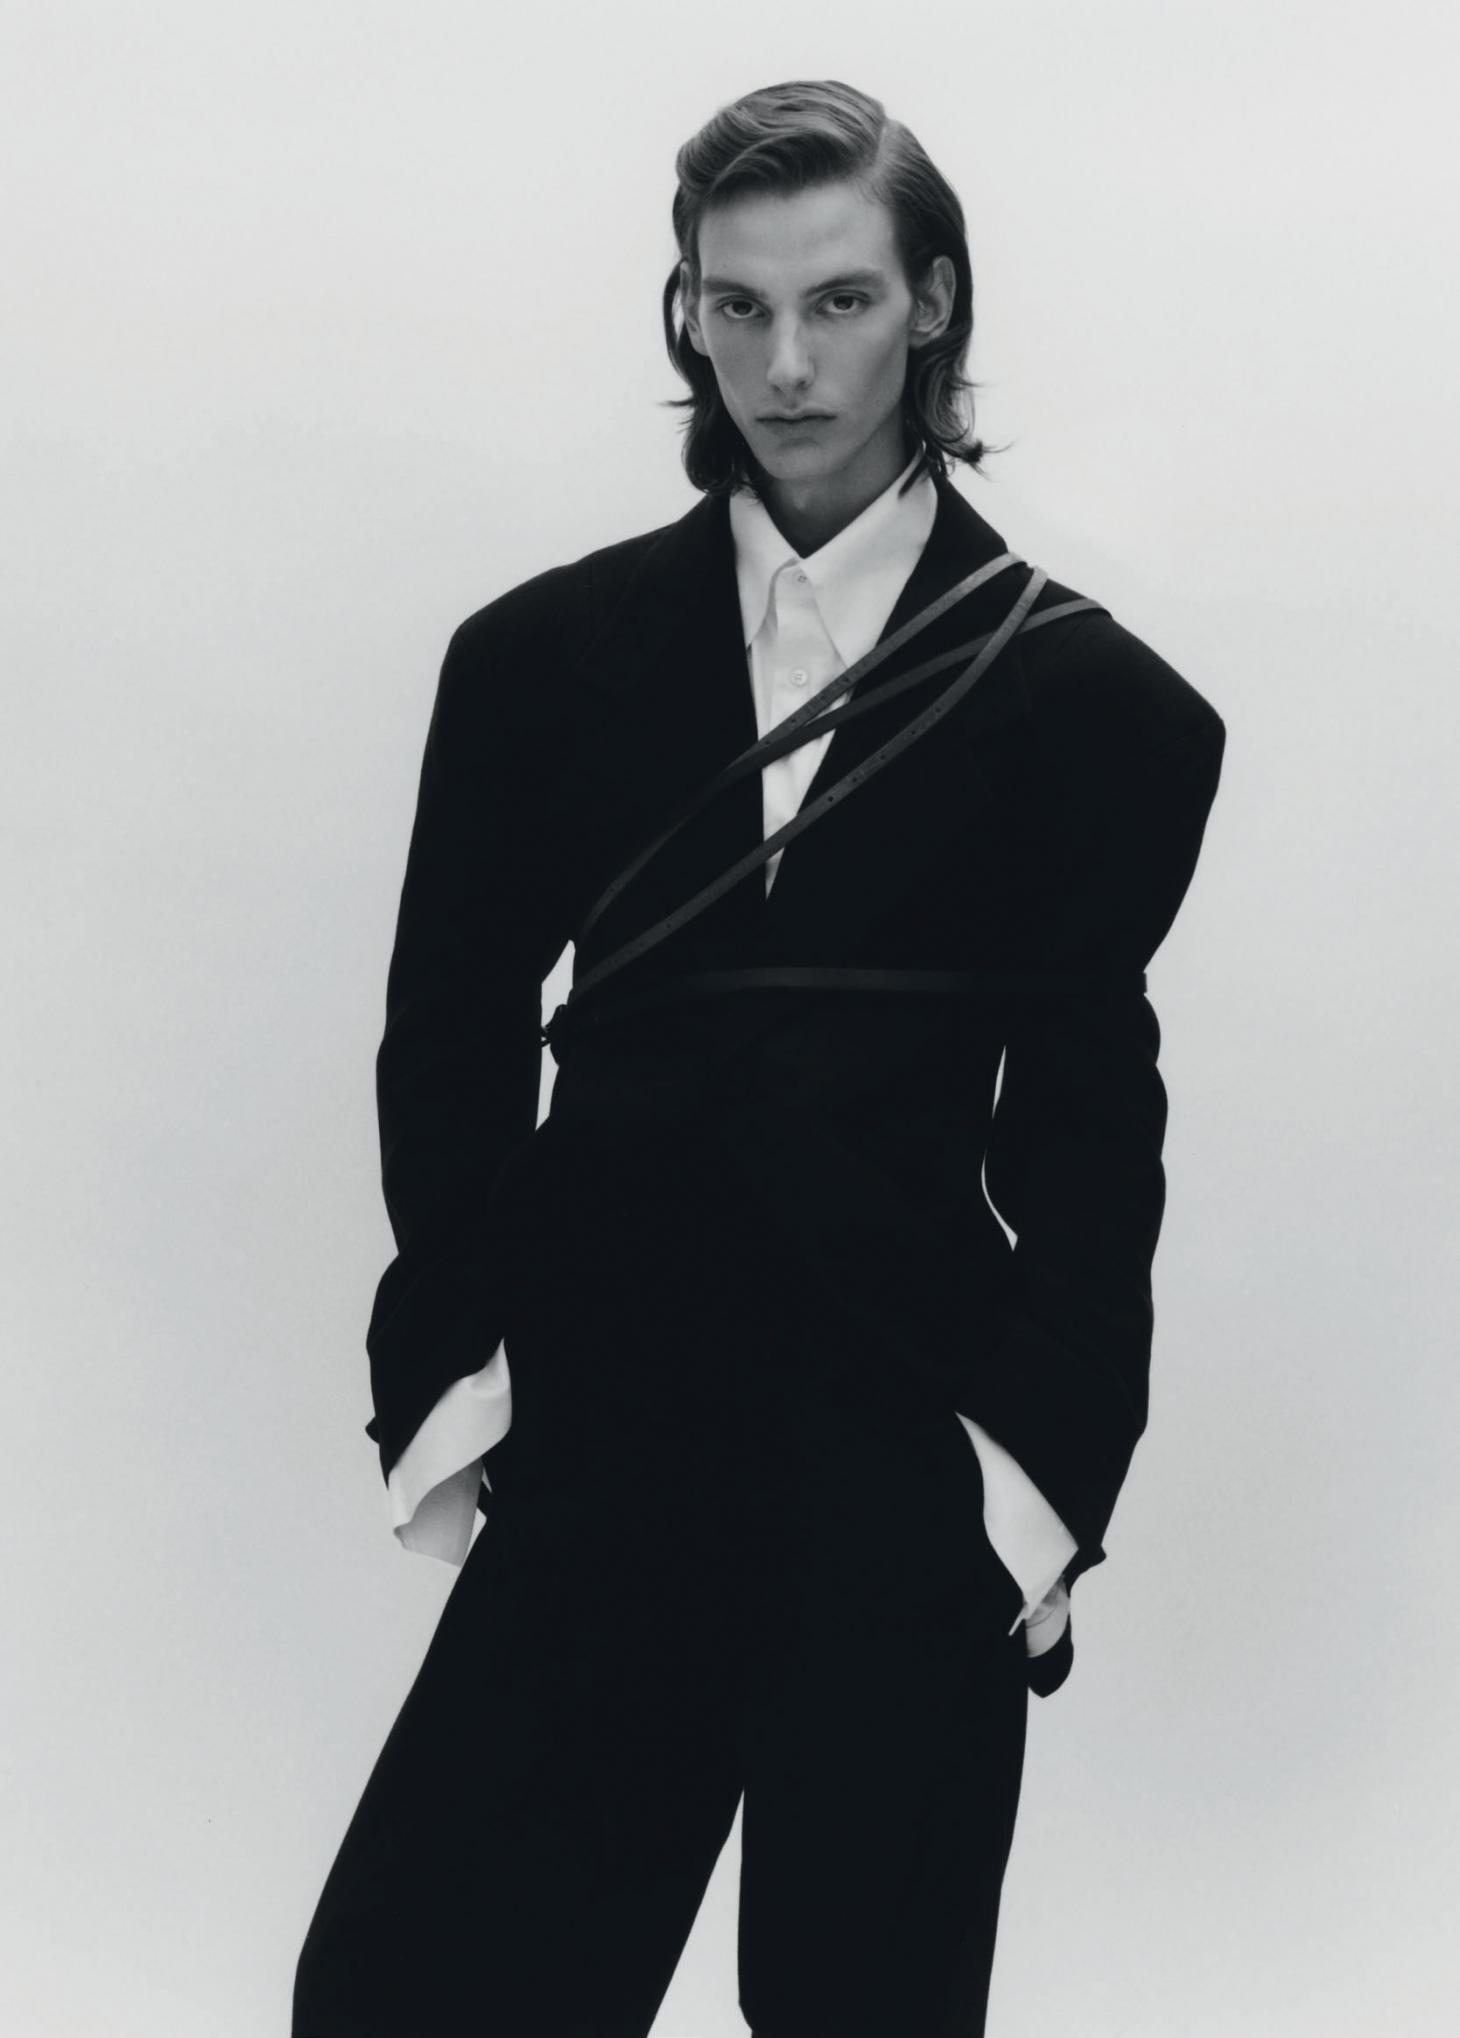 Man stands in a black smoking jacket with a white shirt